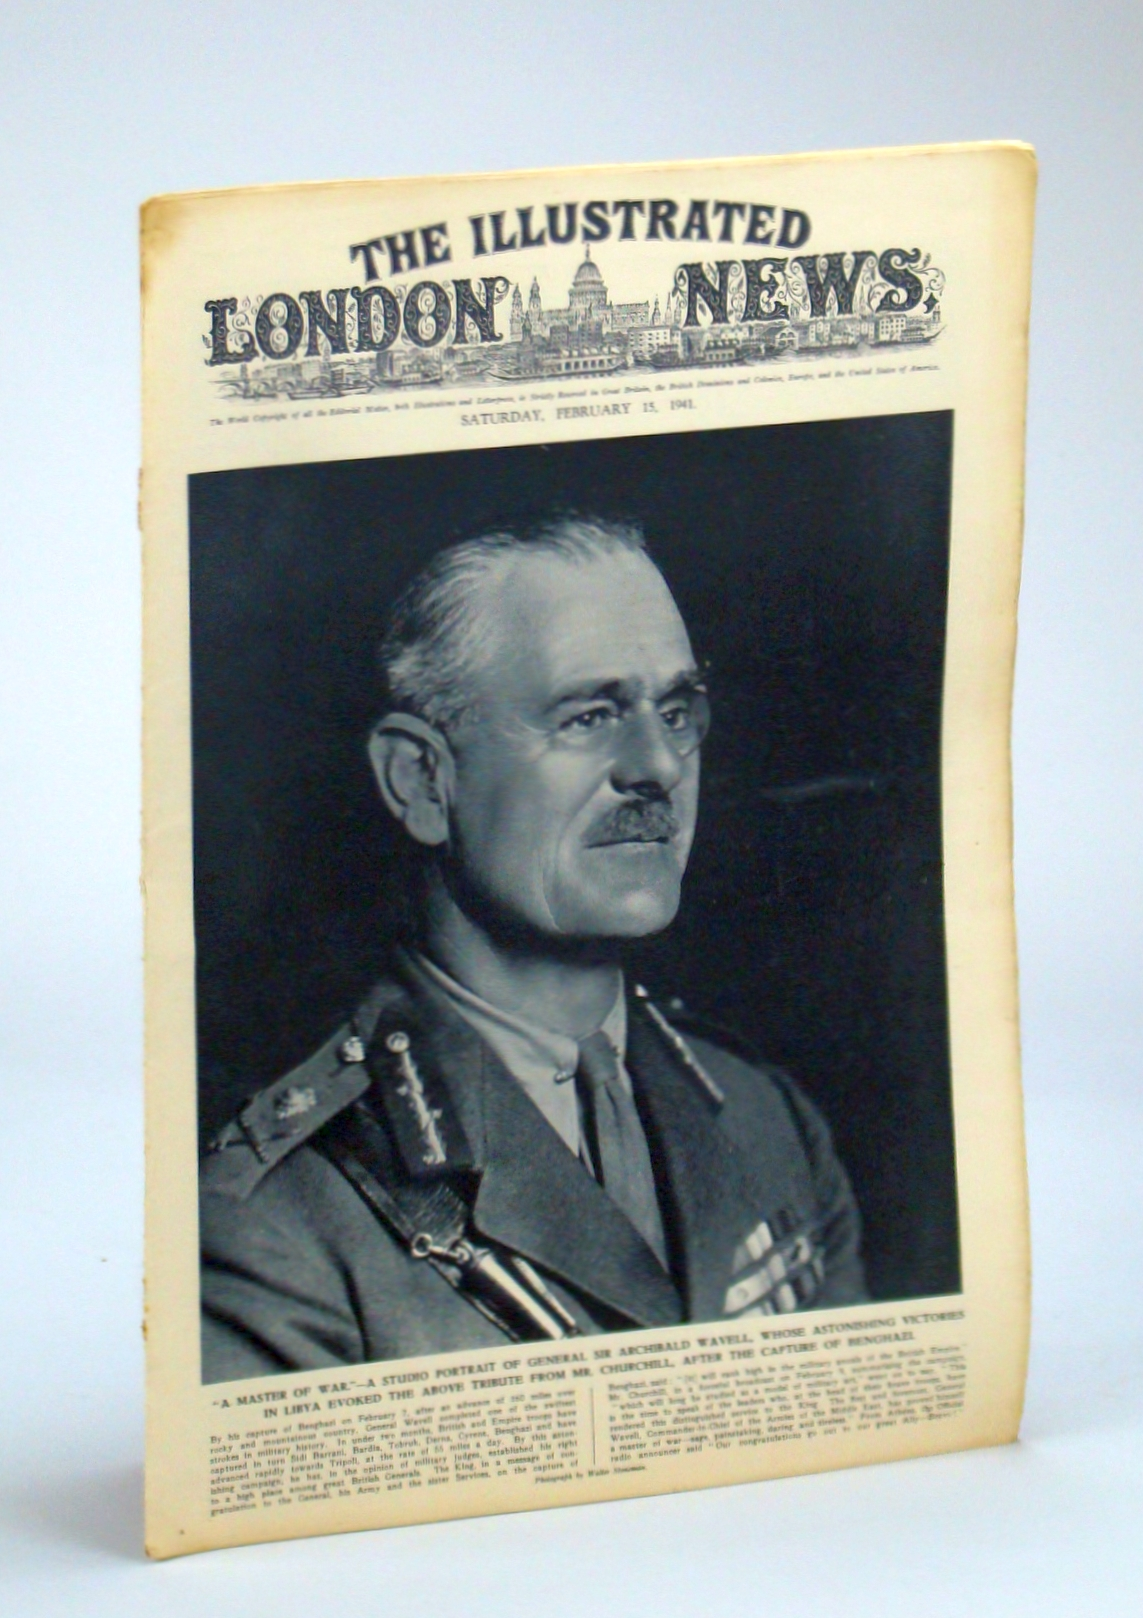 Image for The Illustrated London News, Saturday, February [Feb.] 15, 1941 - Sir Archibald Wavell Cover Photo